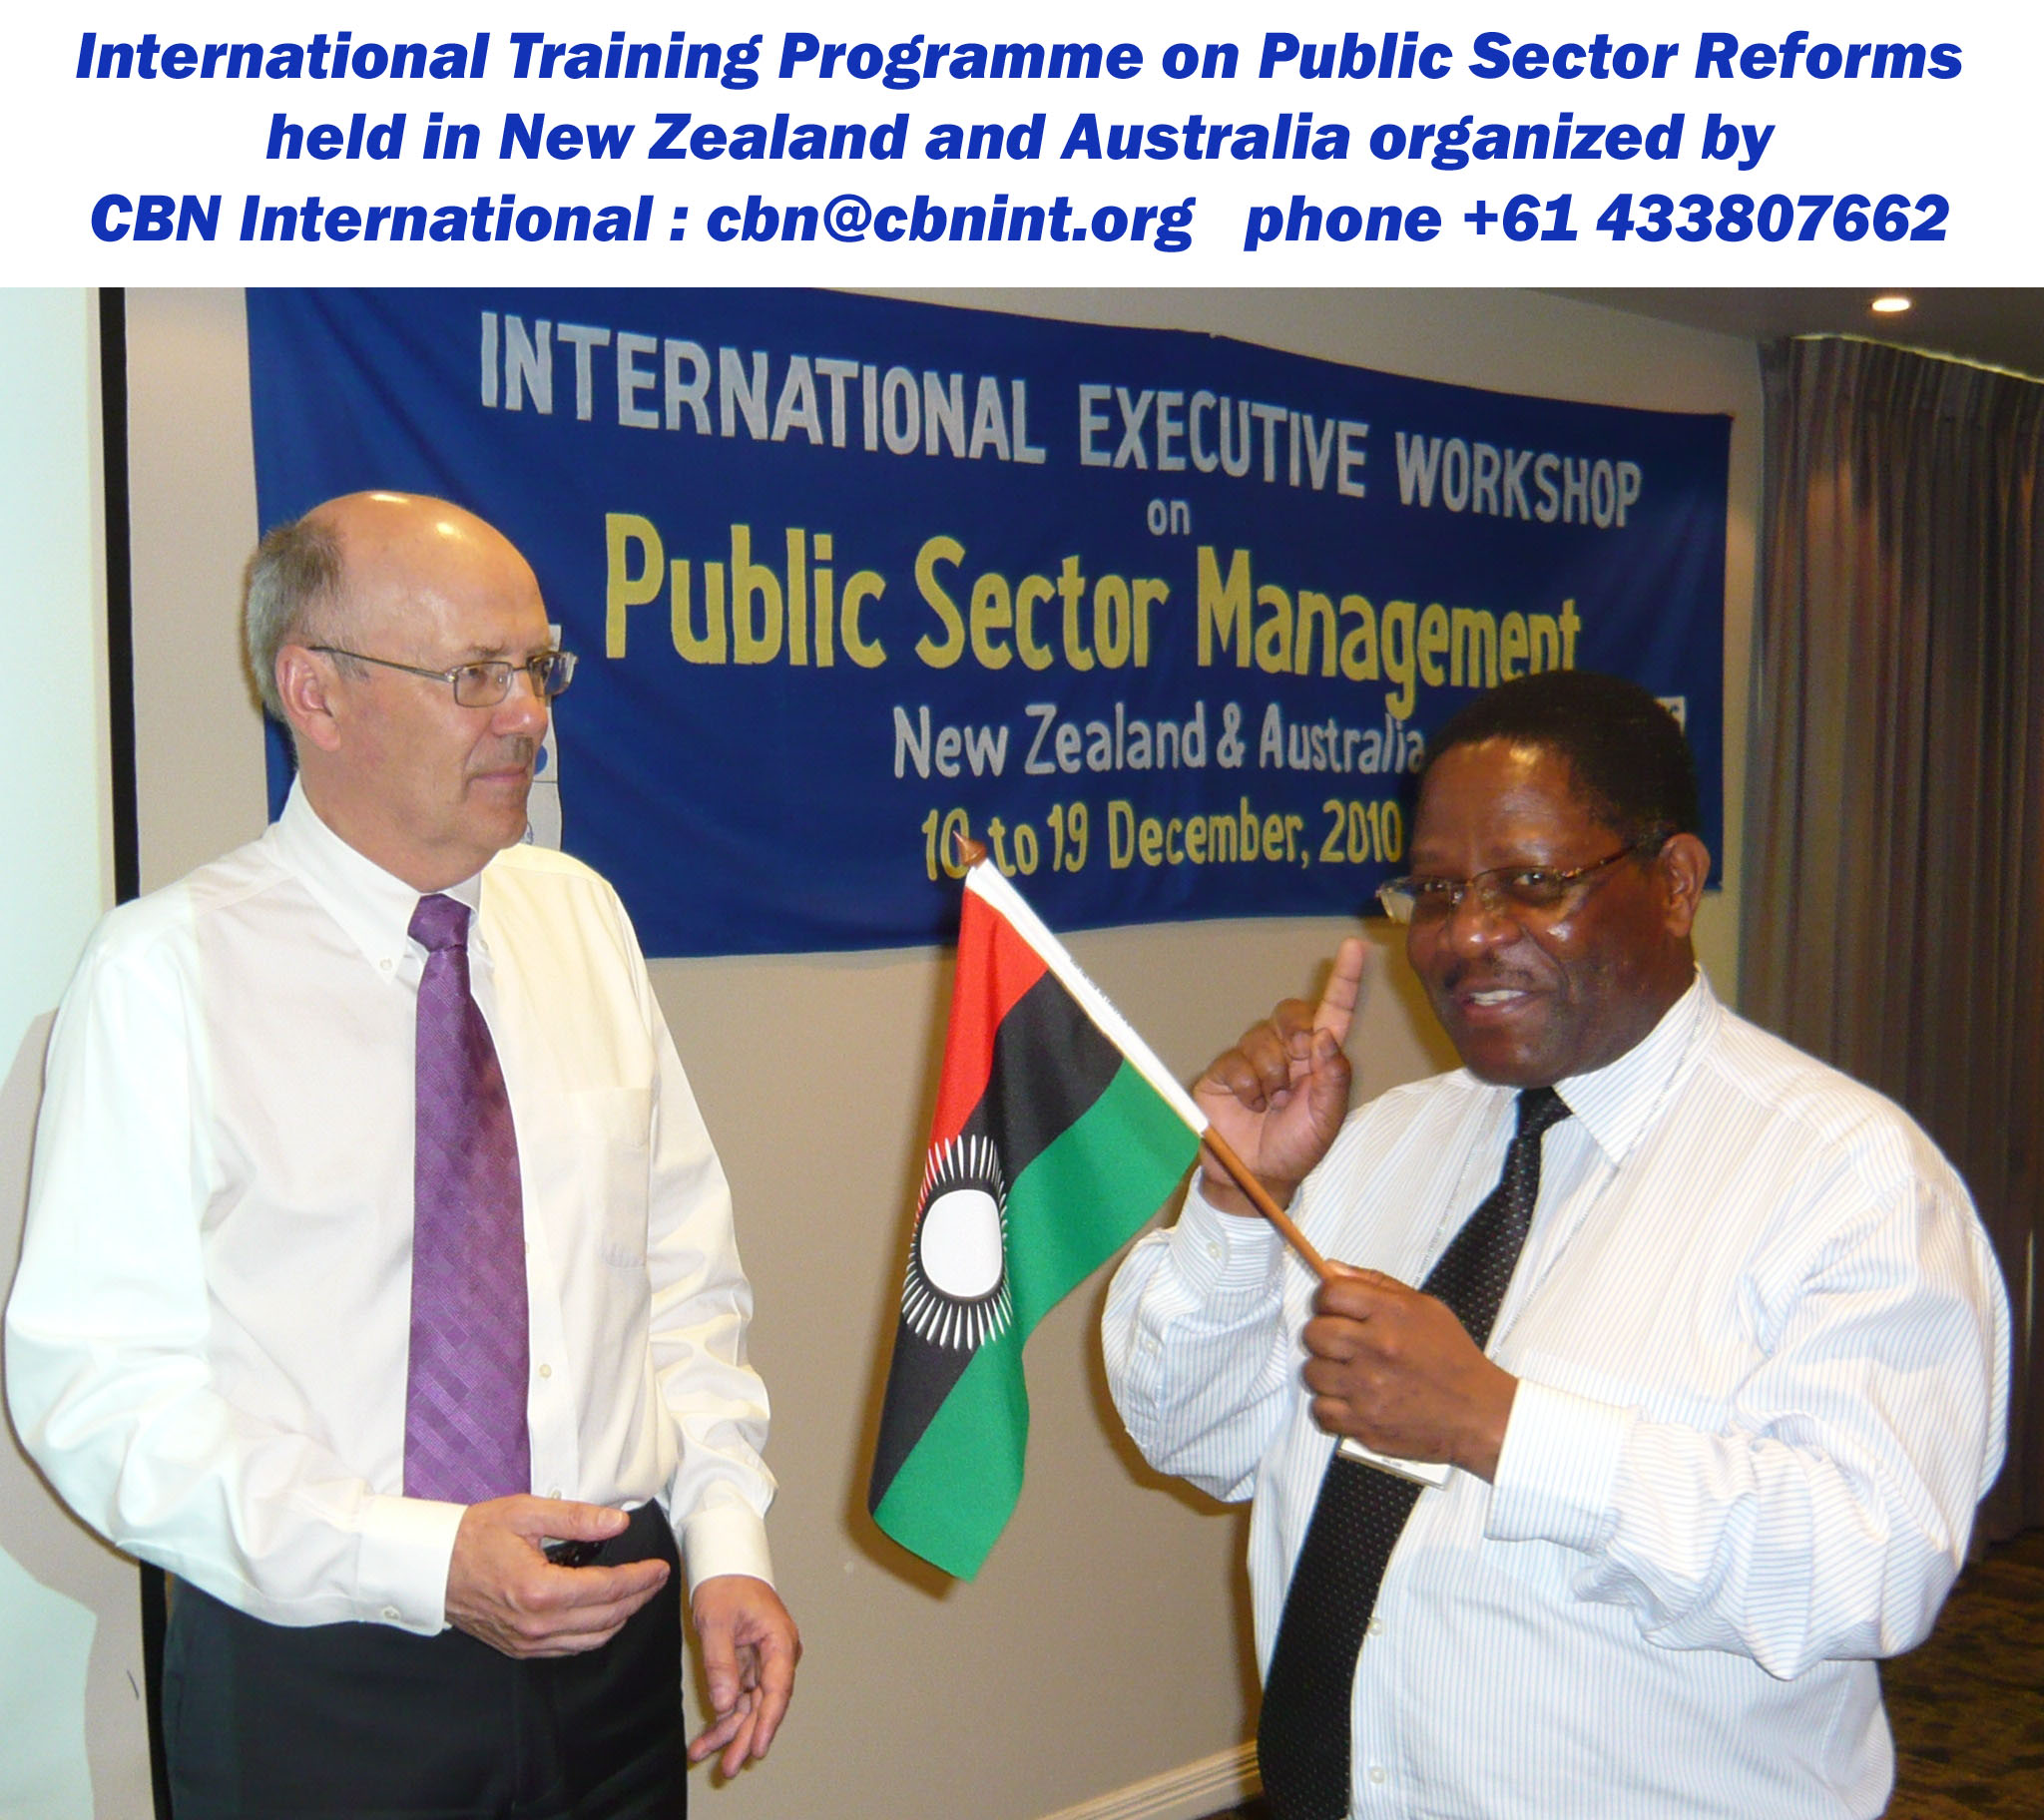 Mr. Necton D. Mhura, Dy. Chief Secretary, Malawi presenting a memento to Hon. David Caygill, former Minister of Finance New Zealand during a CBN international training and study tour programme held in Auckland; short course on Good Governance series.